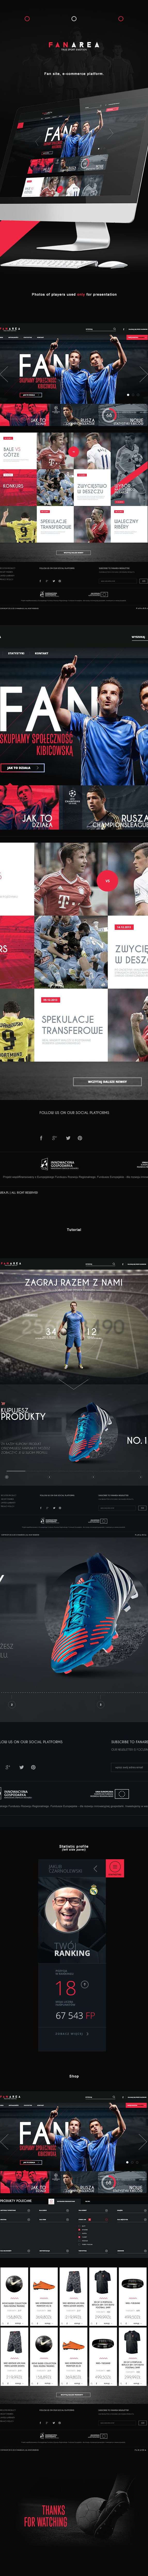 Football Fan Site & Shop on Behance